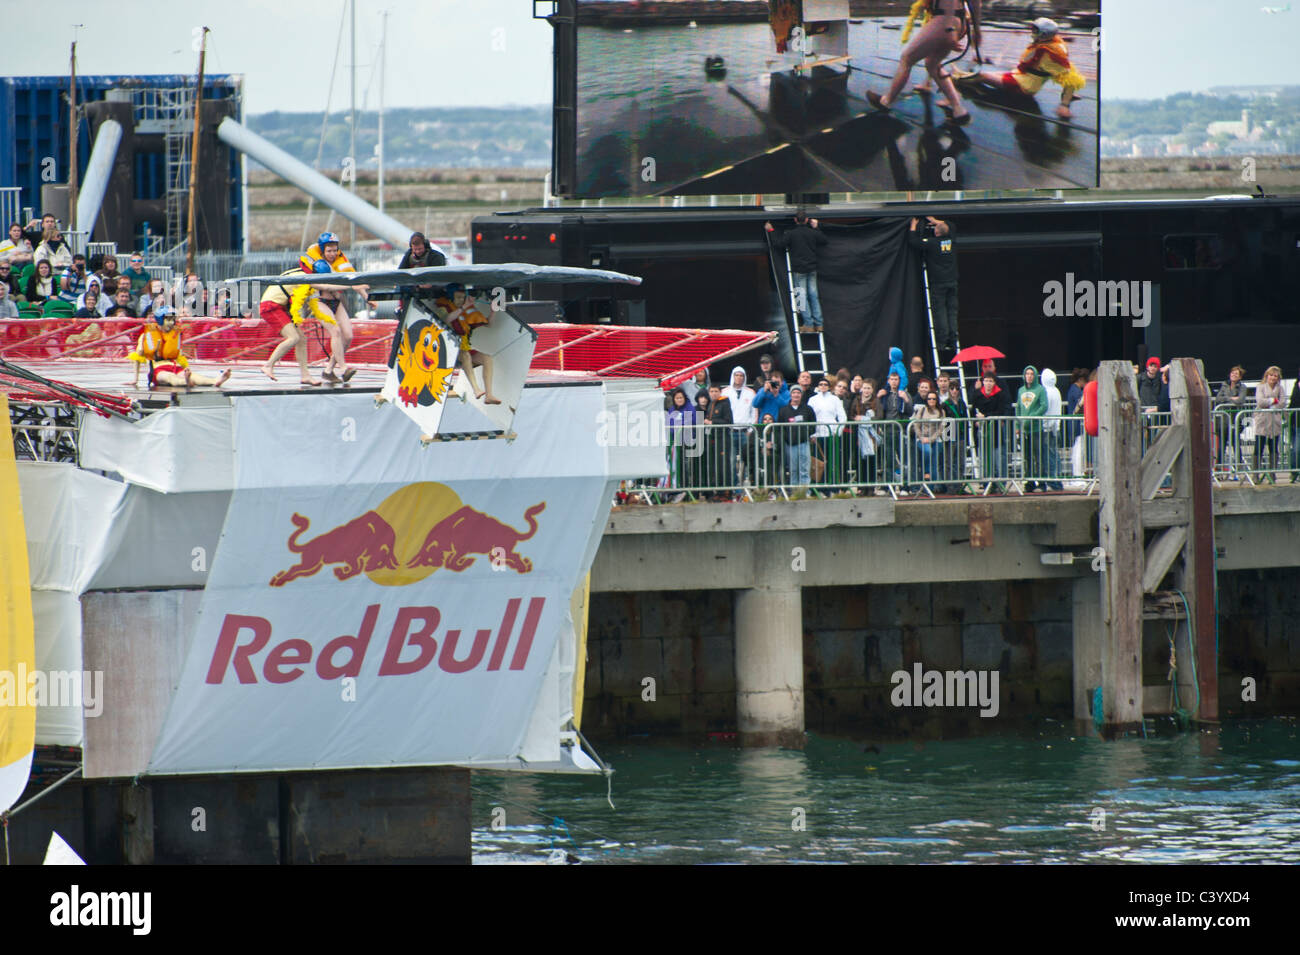 Red Bull 100th Flugtag Dun Laoghaire Harbour - Co Dublin which took place on the 22.05.2011 - Stock Image